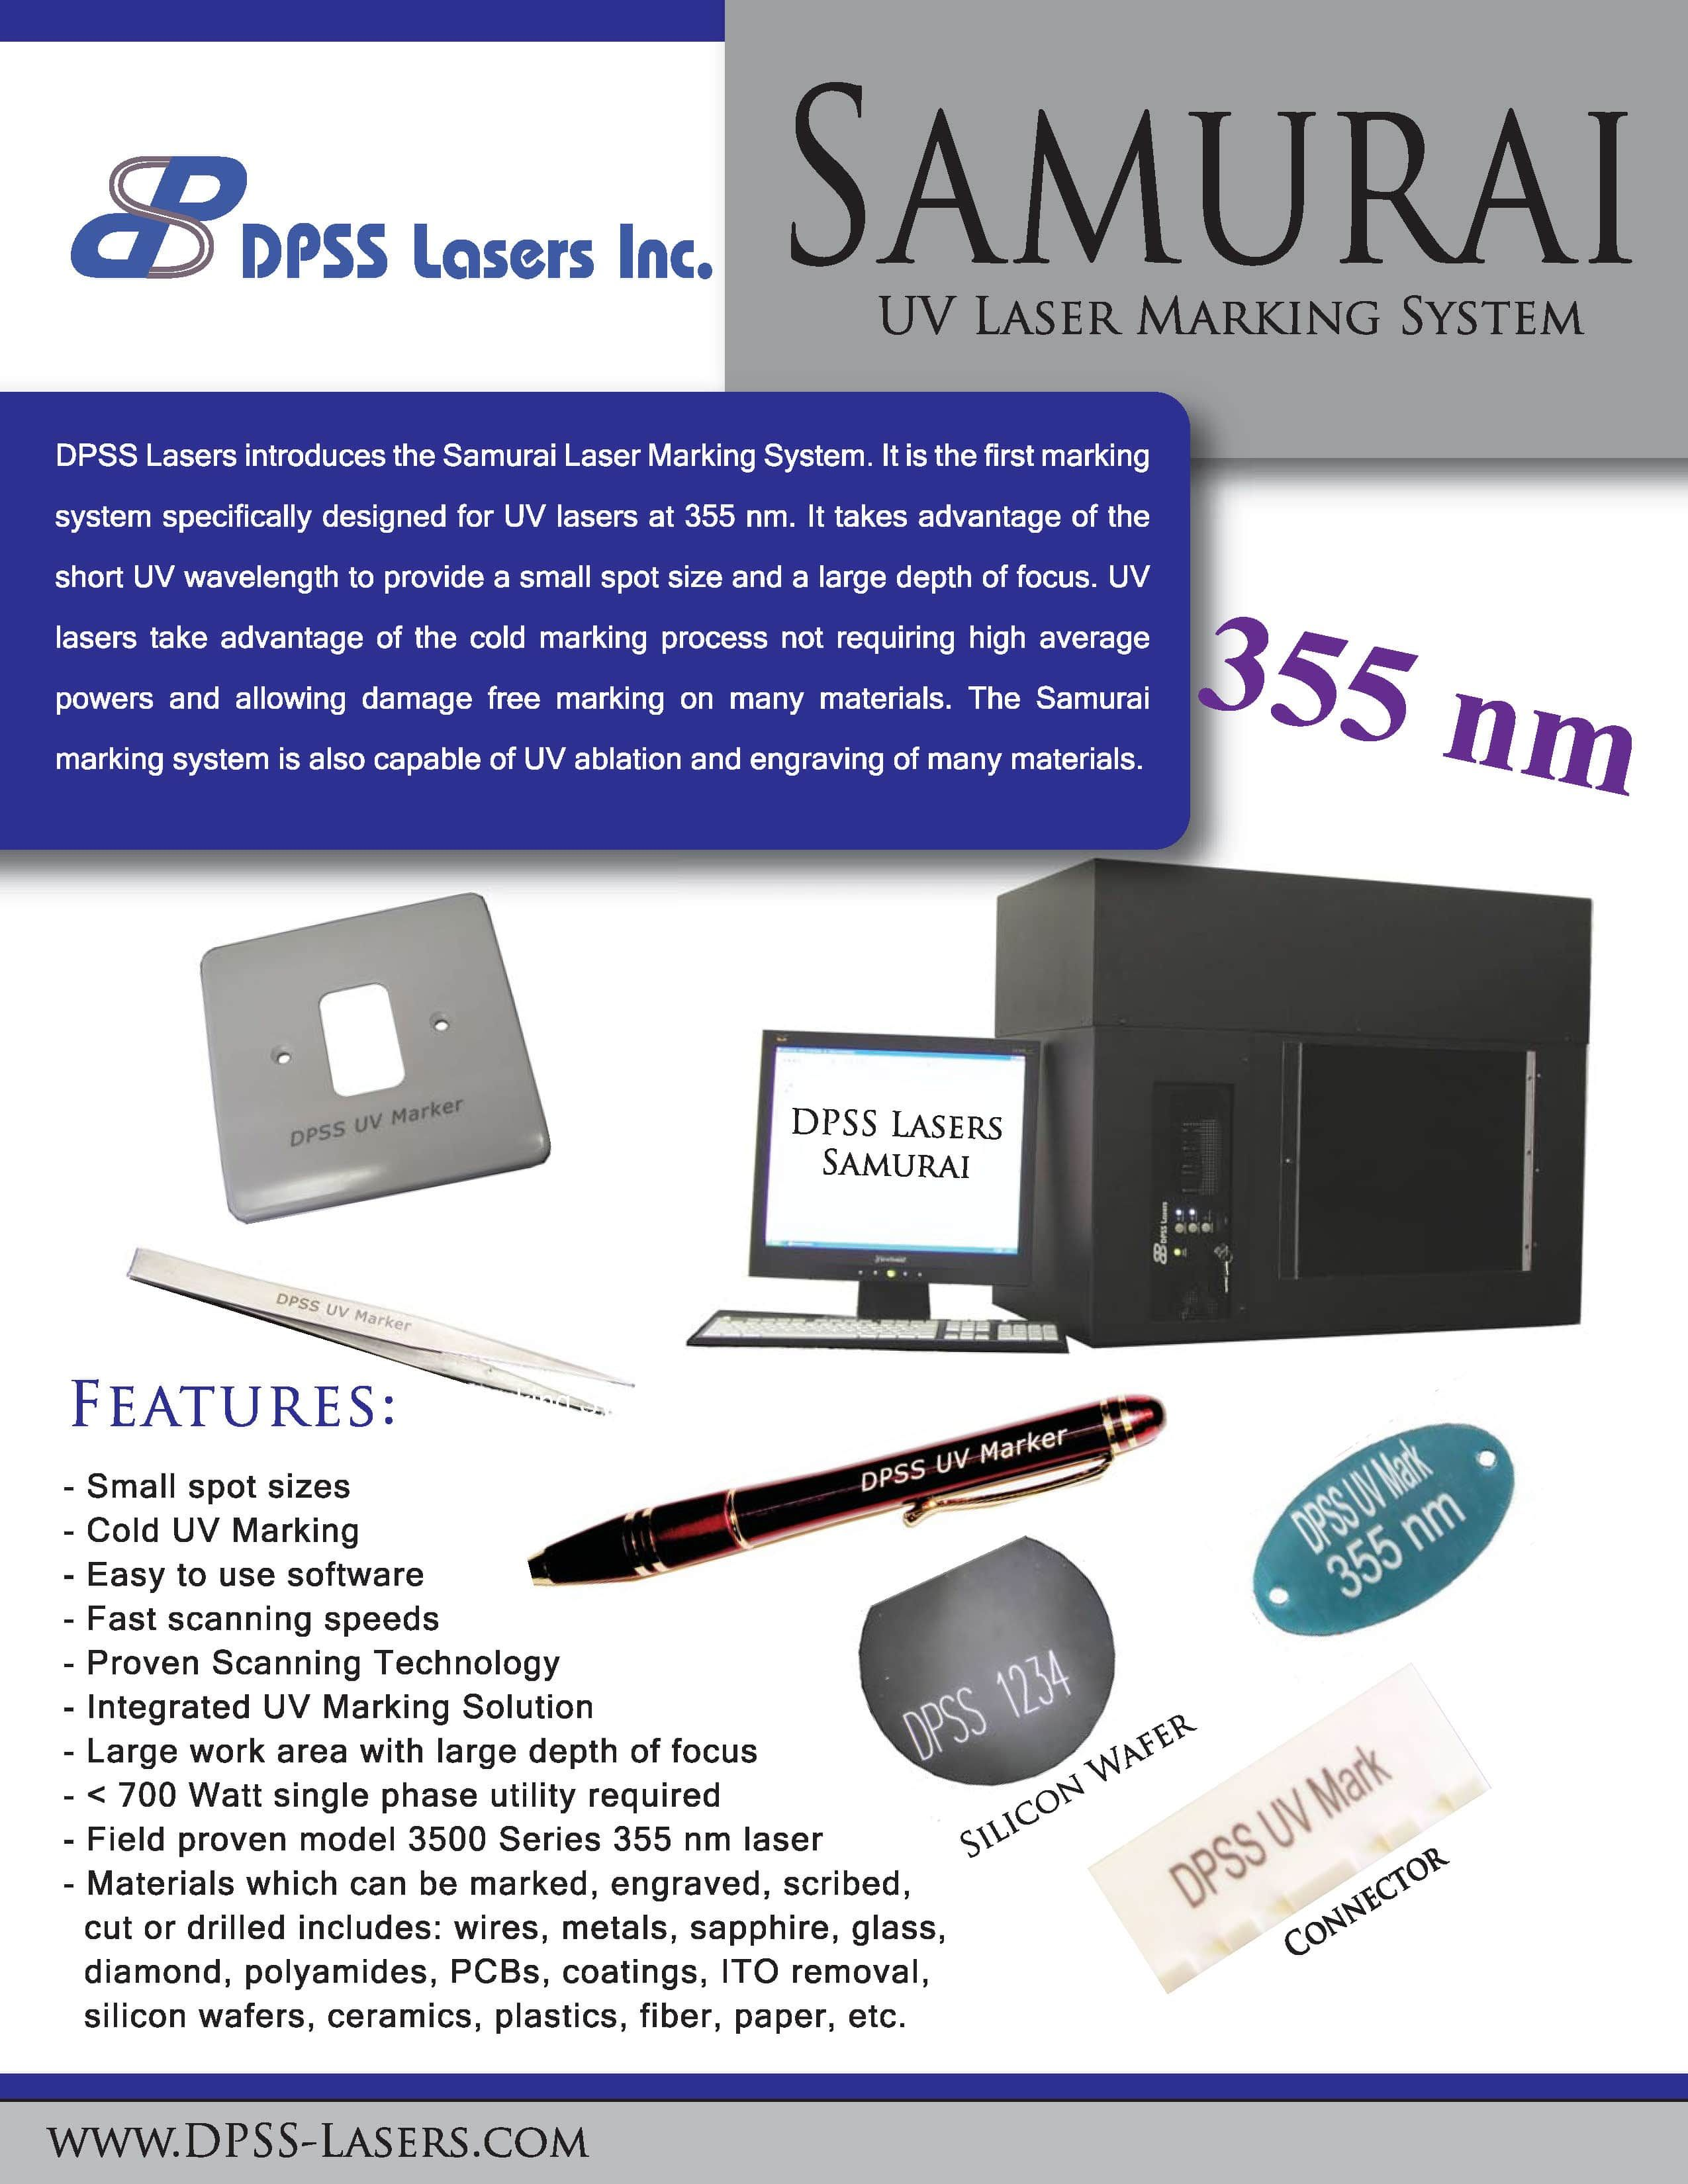 DPSS Lasers Samurai UV Marking System for UV Lasers with Chiller & Computer